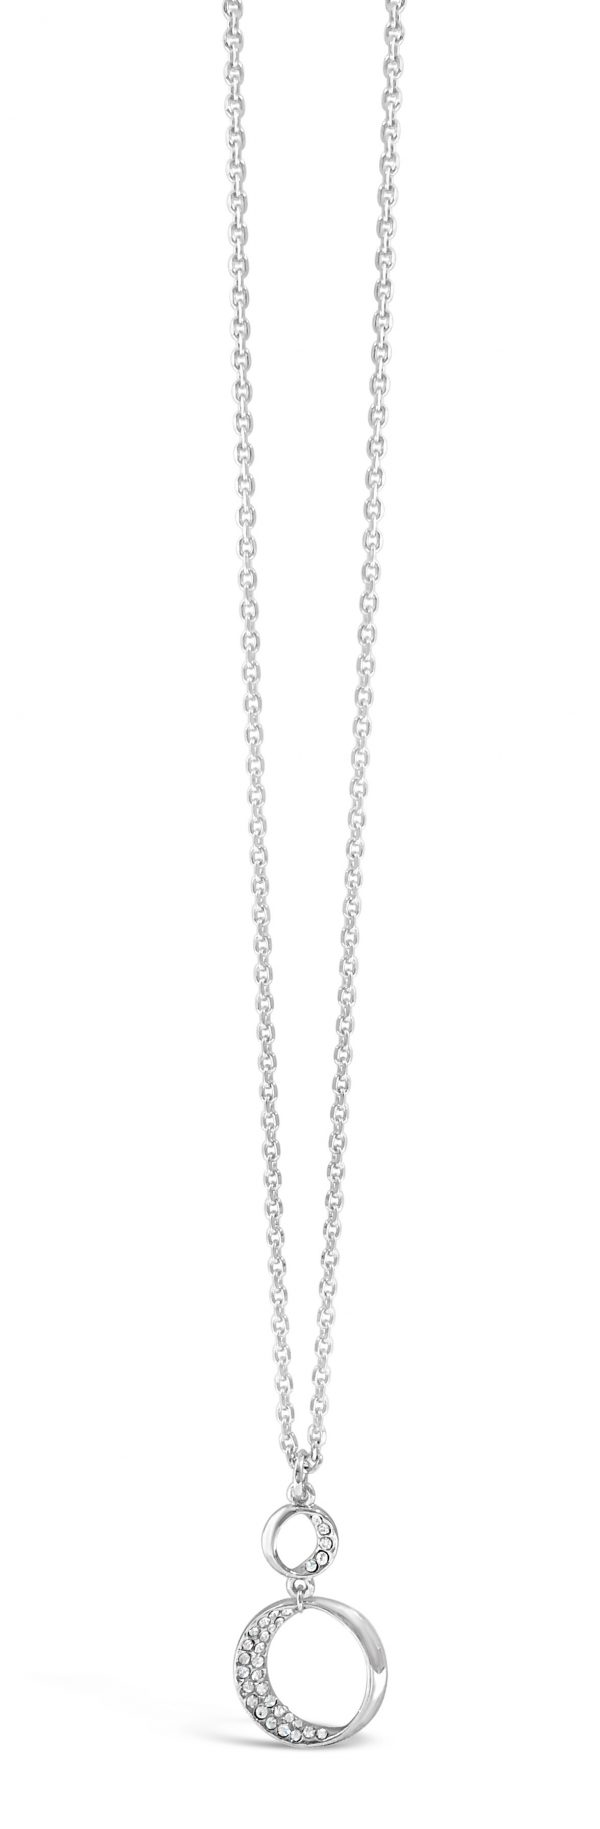 ABSOLUTE N1103SL NECKLACE